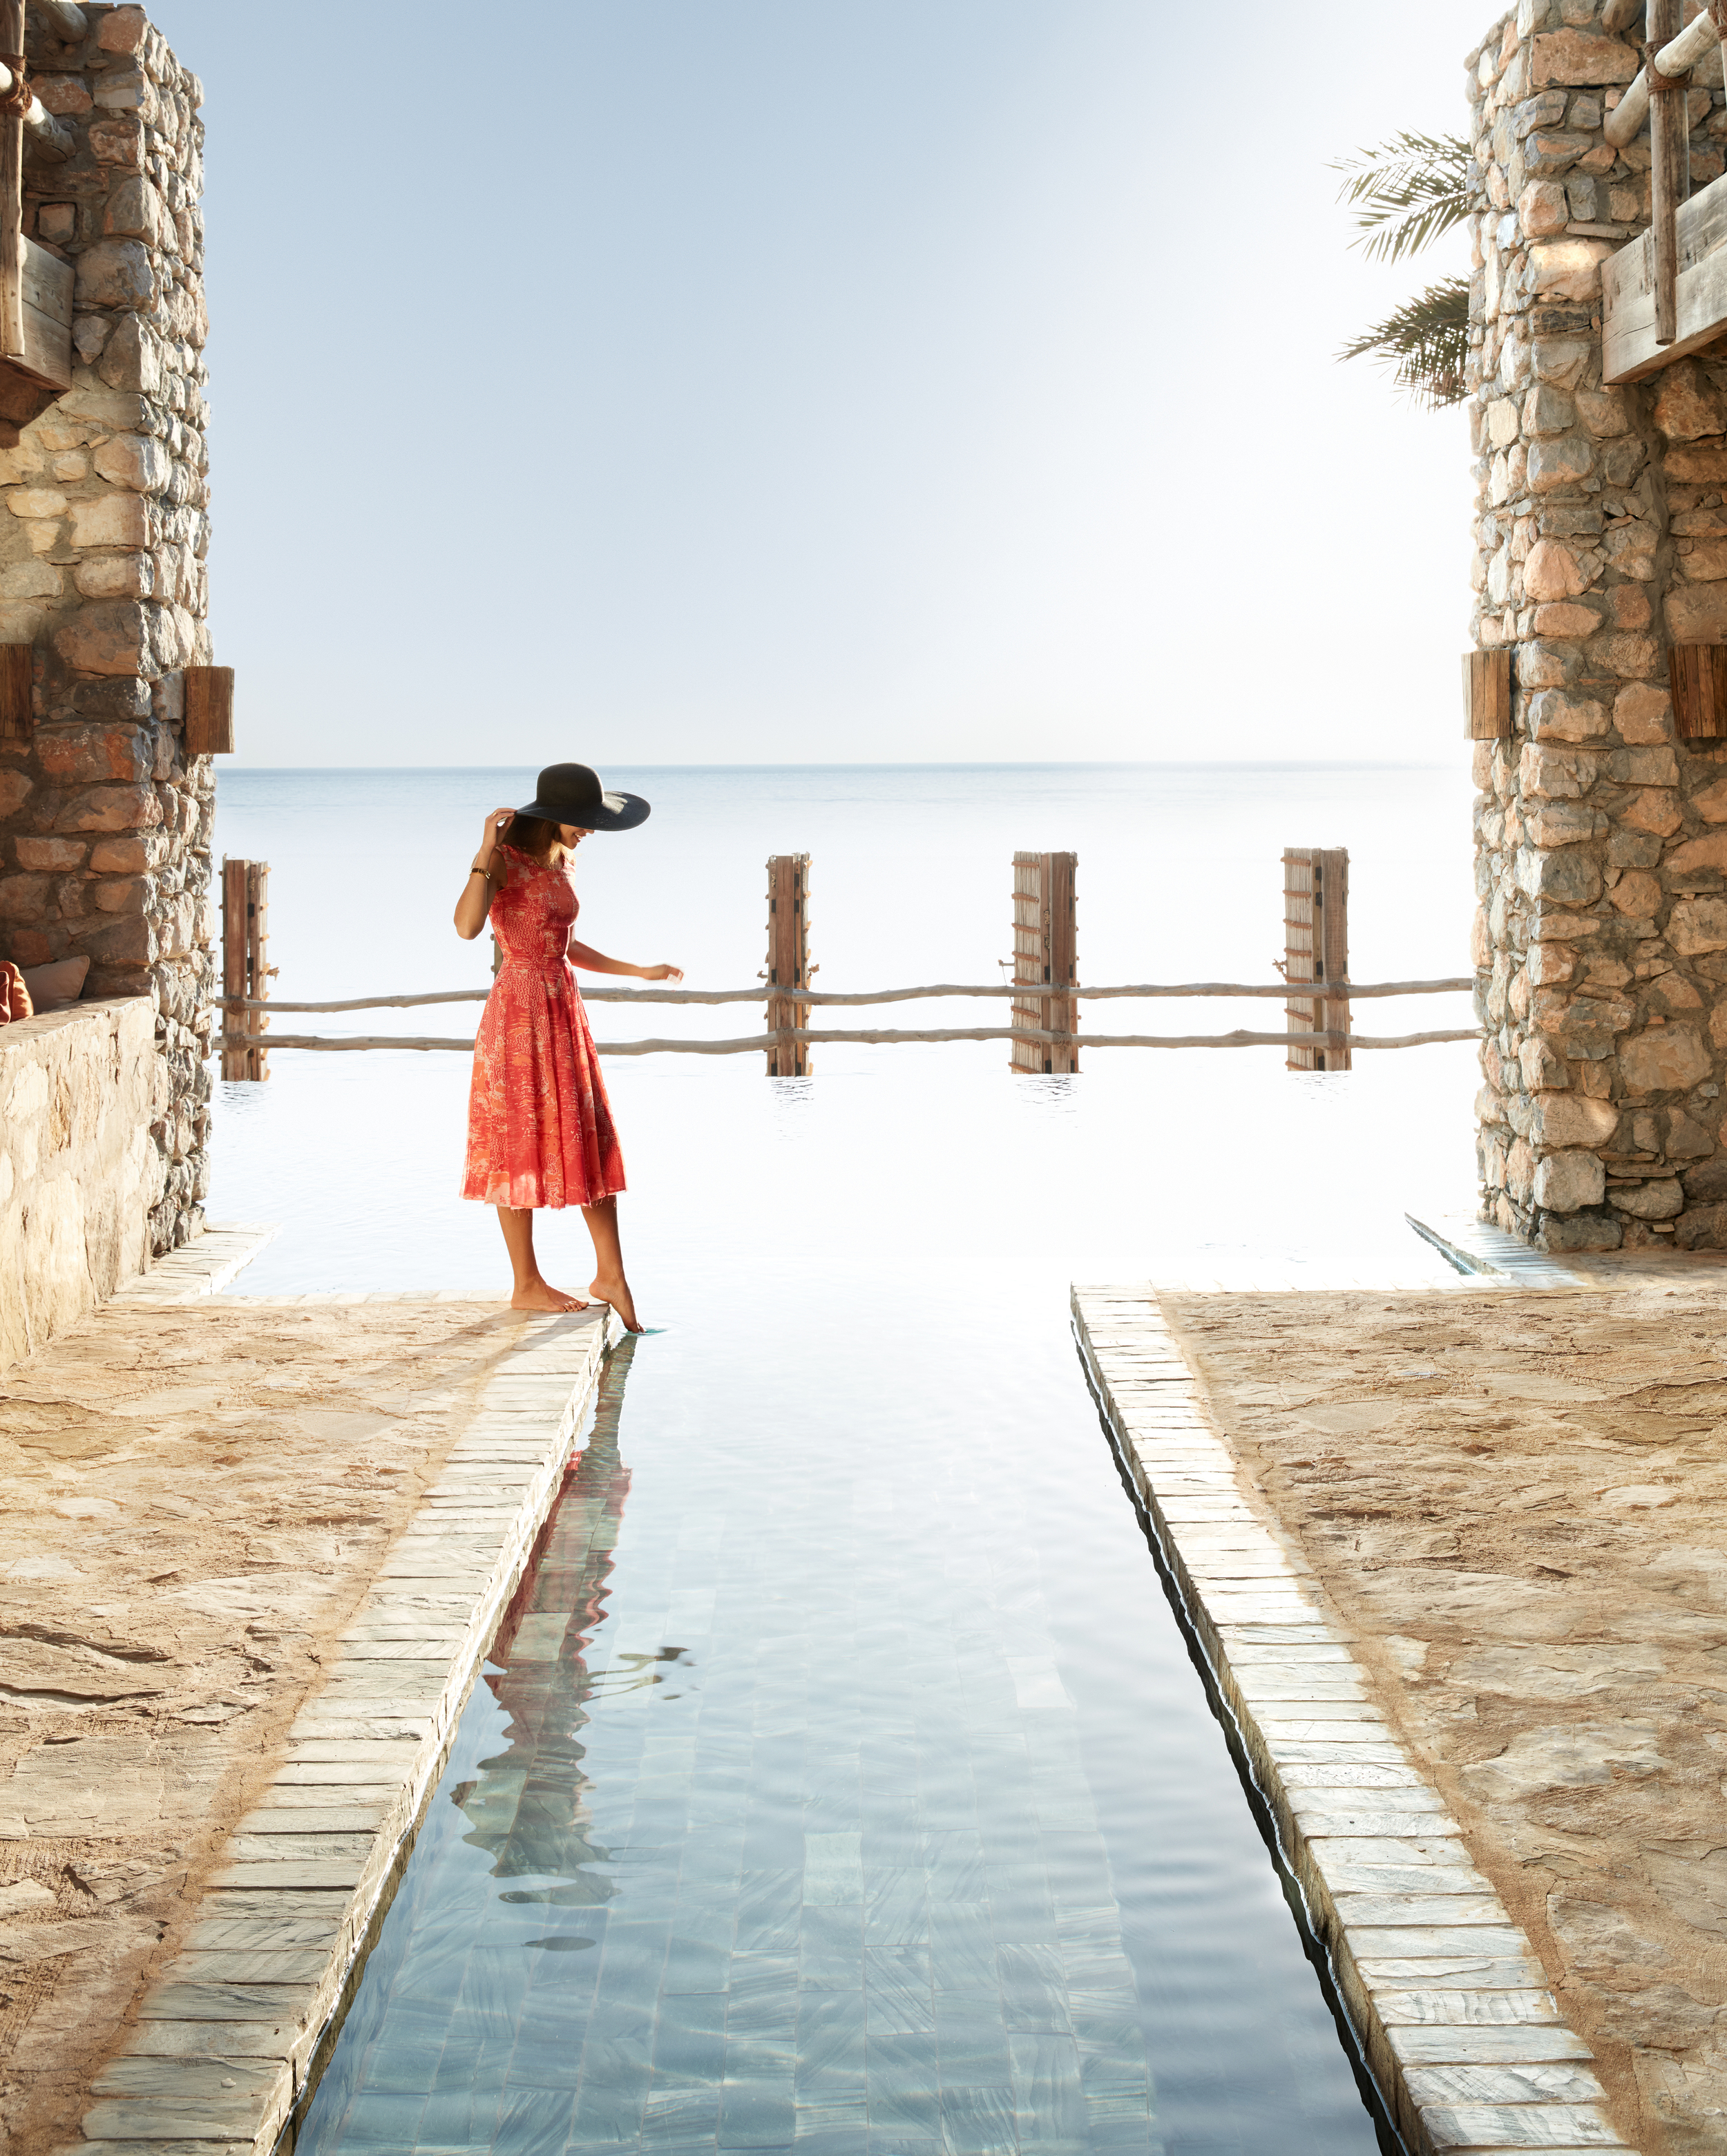 Six Senses, Zighy Bay, Oman.